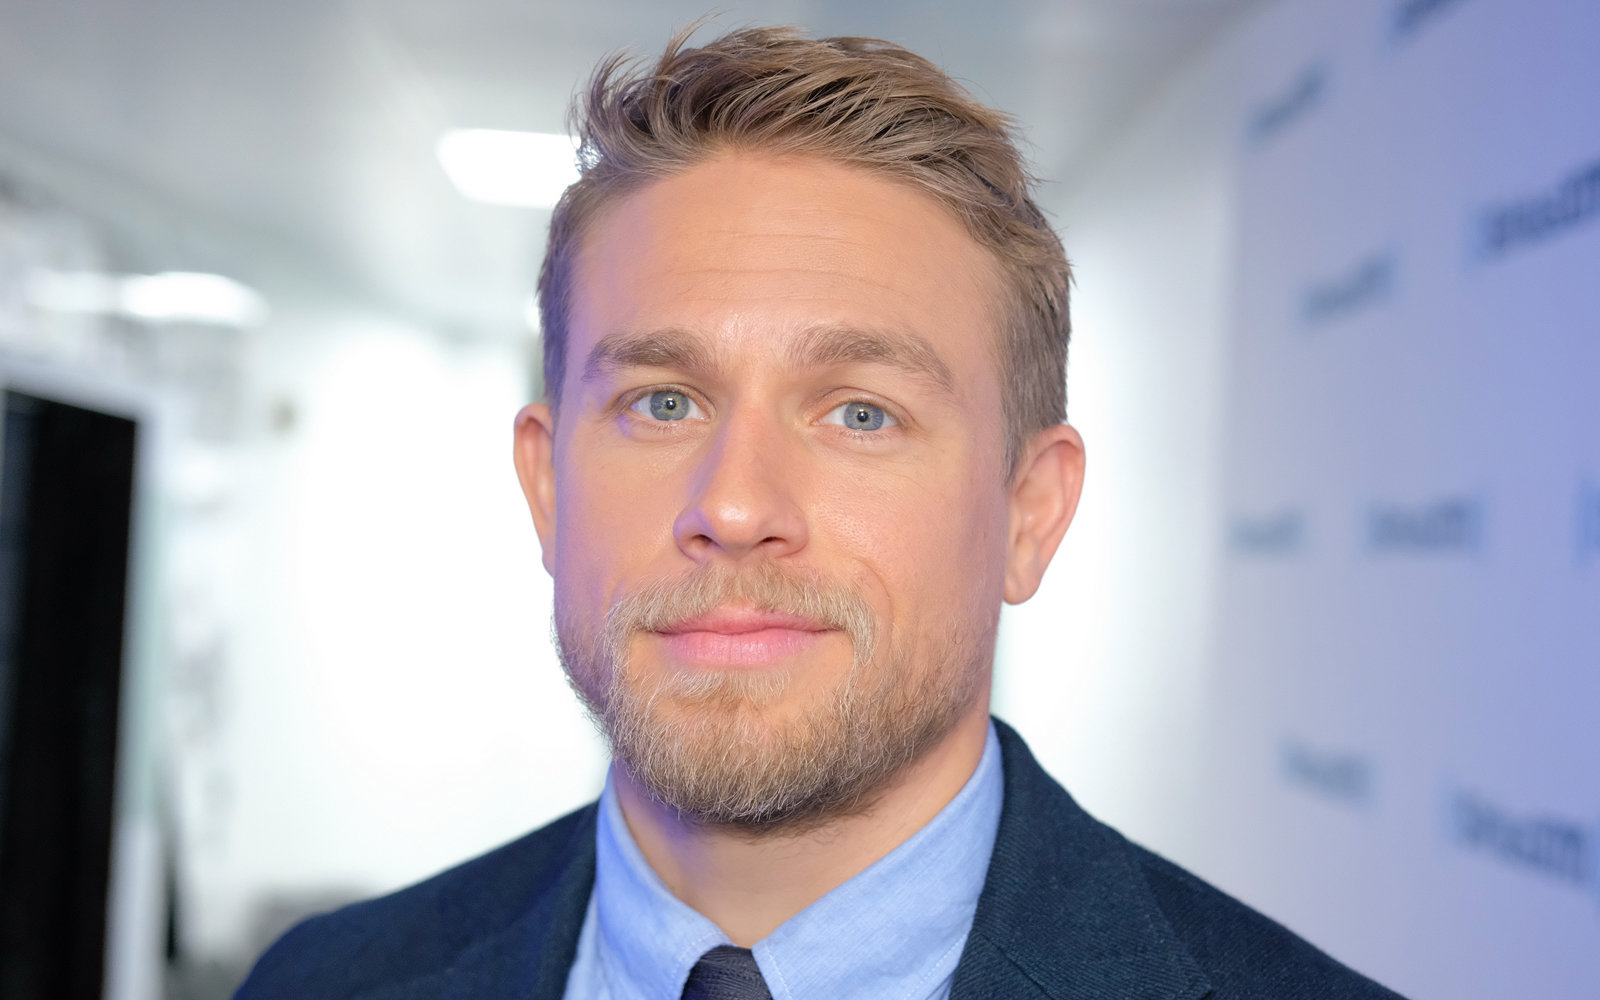 Charlie Hunnam stars in the new film,  King Arthur: Legend of the Sword